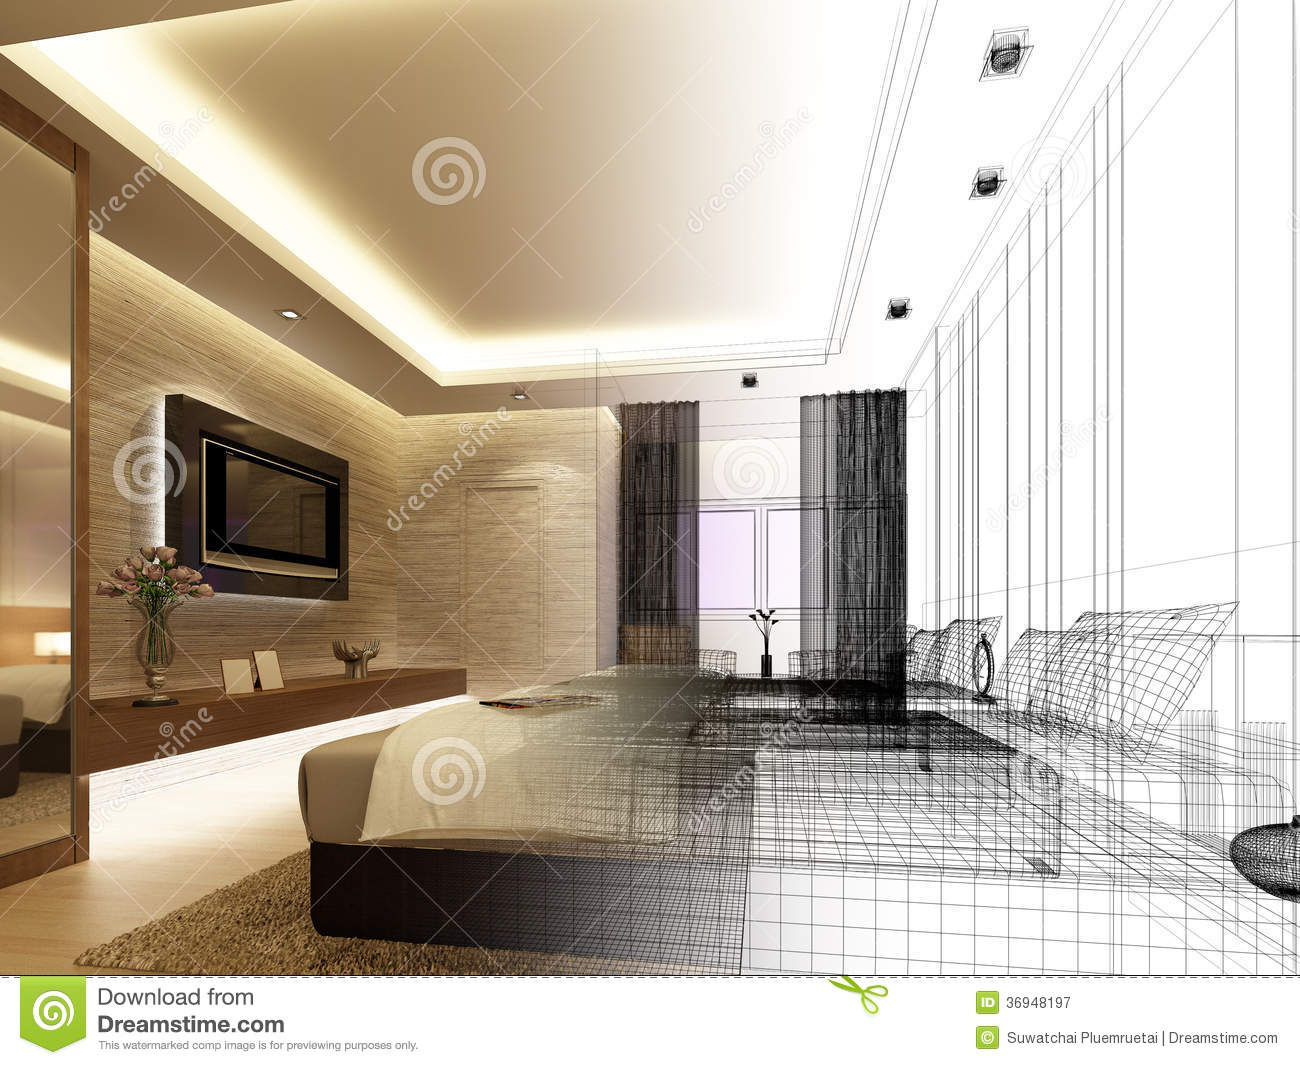 Sketch design of interior bedroom stock illustration for Interior designs photo